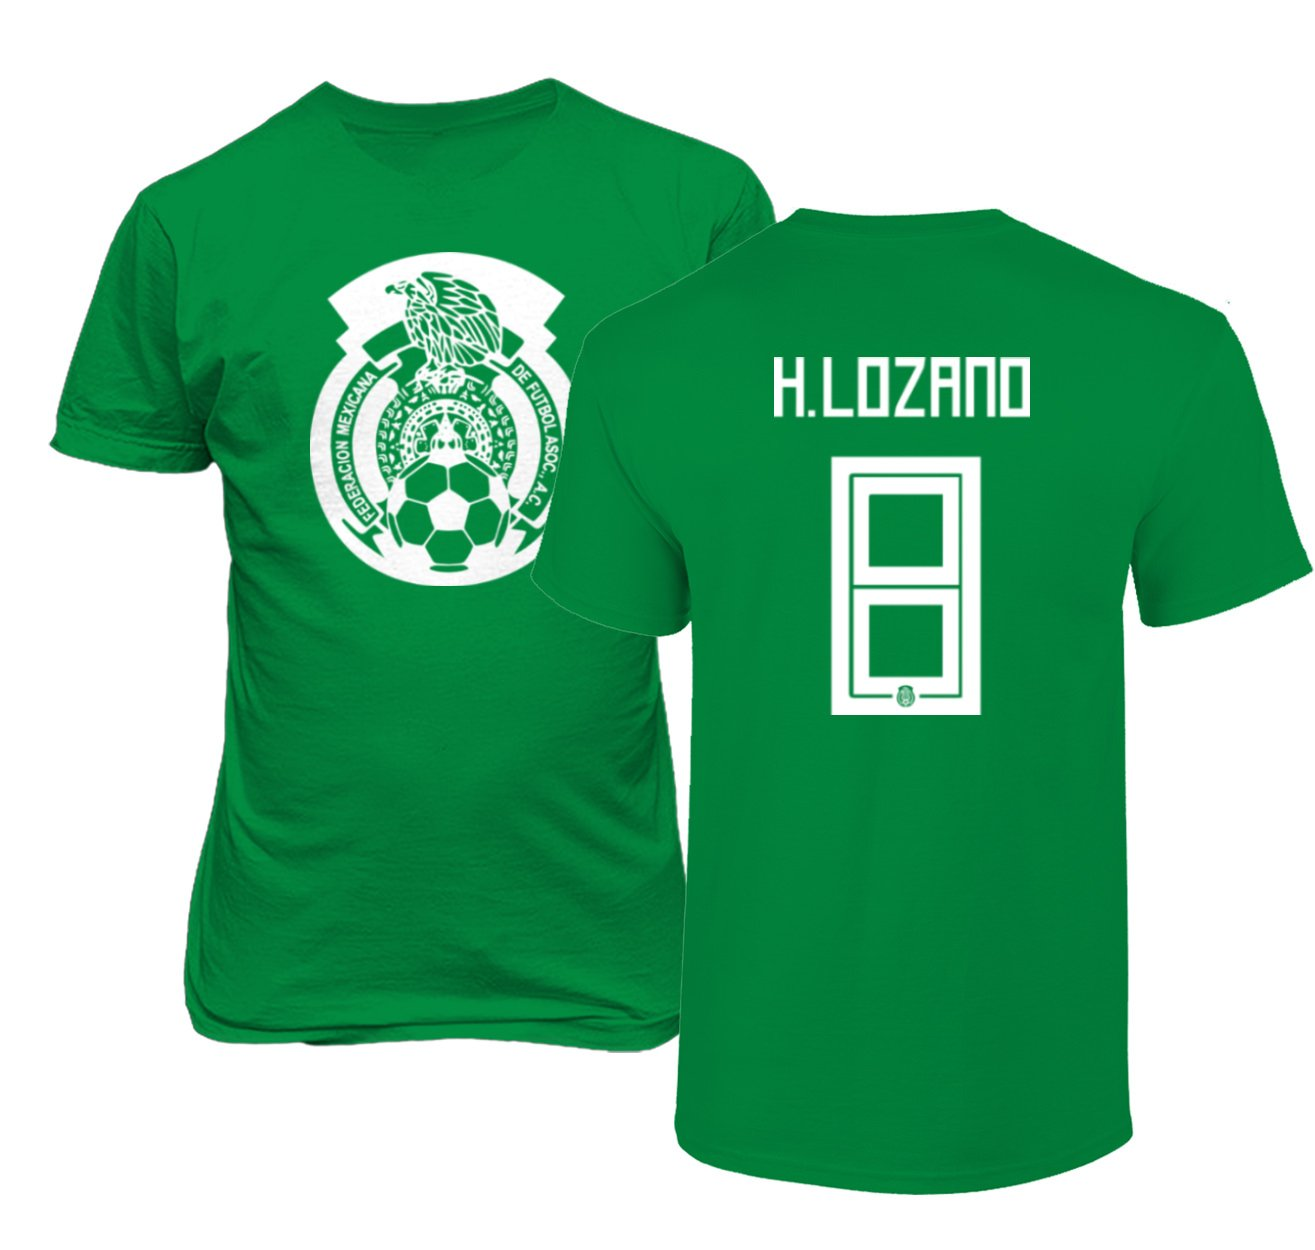 competitive price a6b80 560d2 Tcamp Mexico 2018 National Soccer #8 Hirving Lozano World Championship  Men's T-Shirt